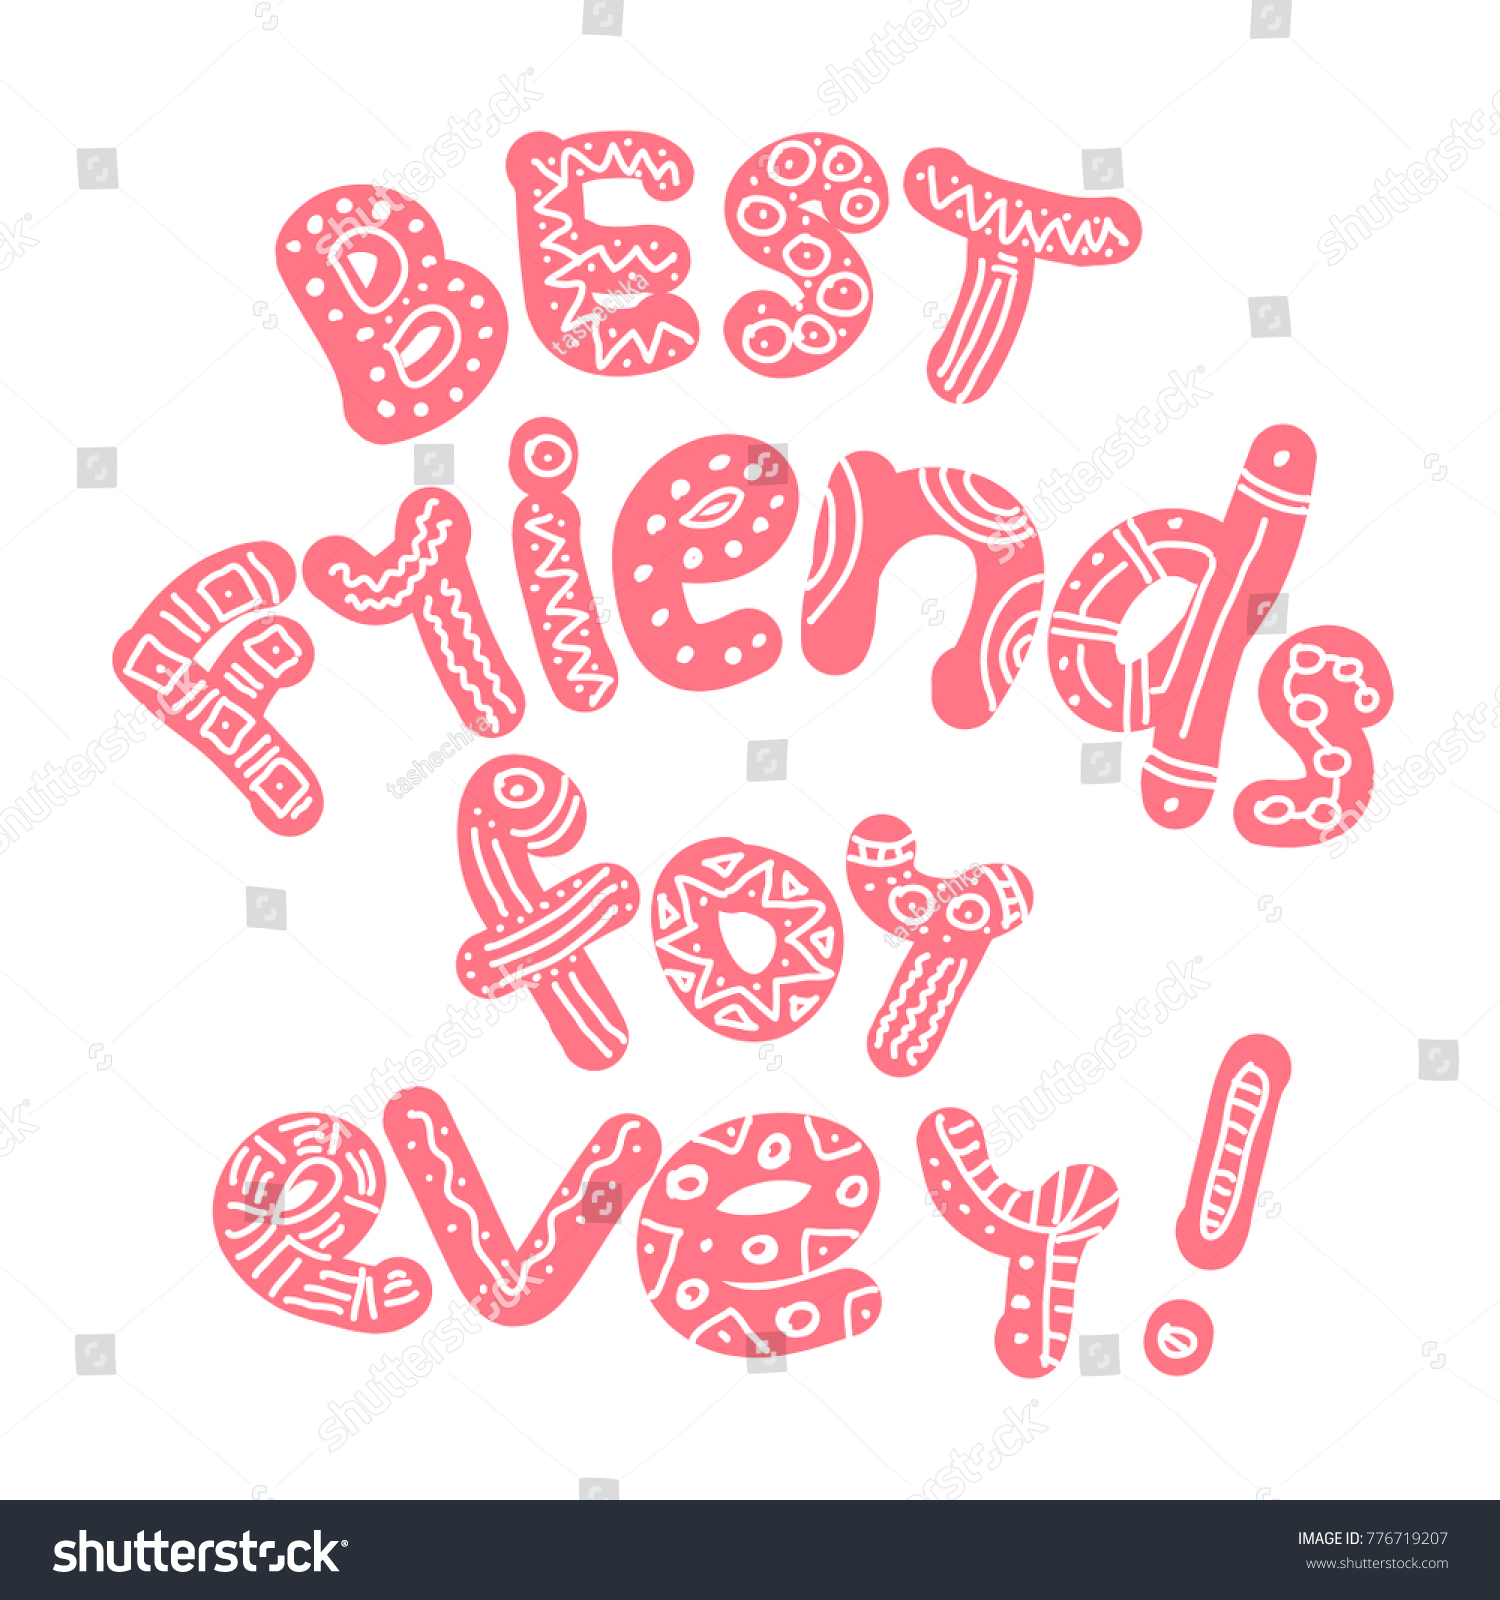 Best Friends Ever Hand Draw Lettering Stock Vector (Royalty Free ...